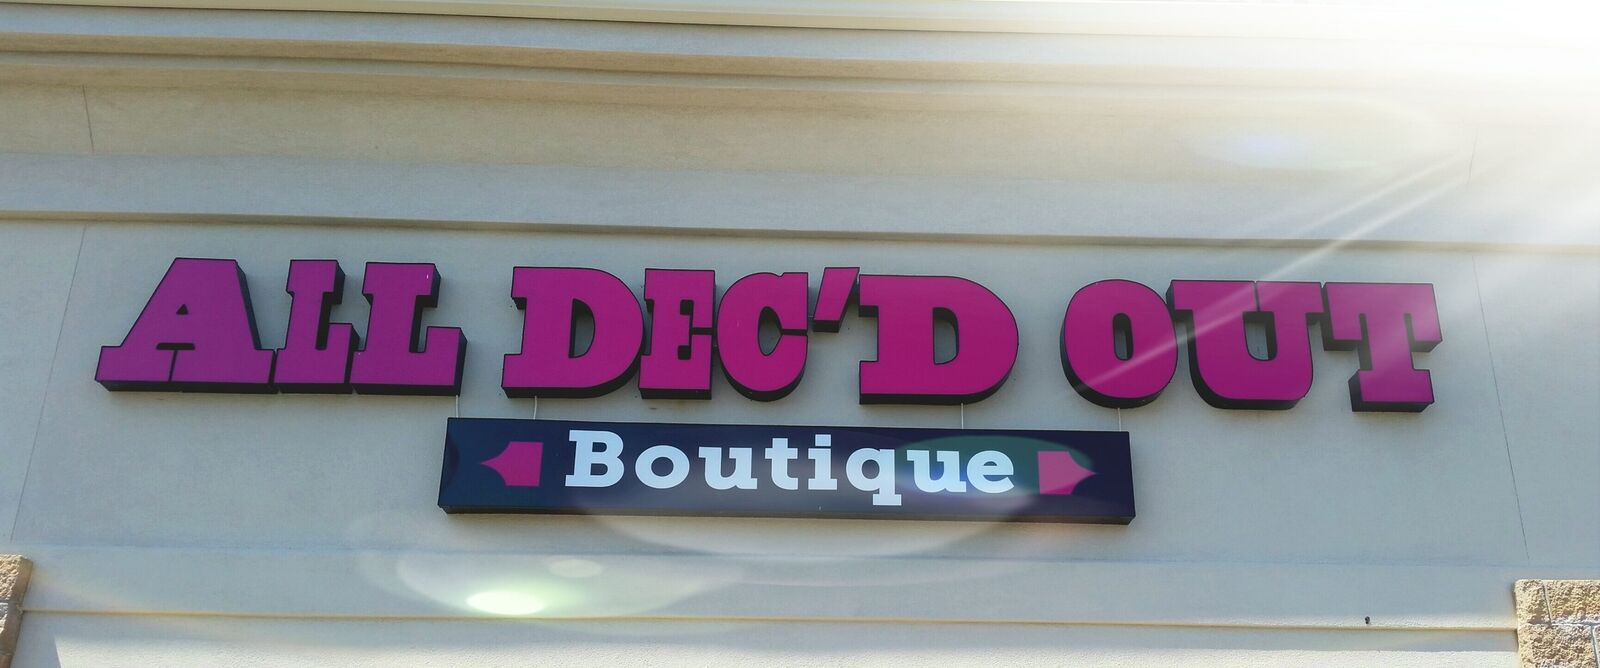 All Decd Out Boutique